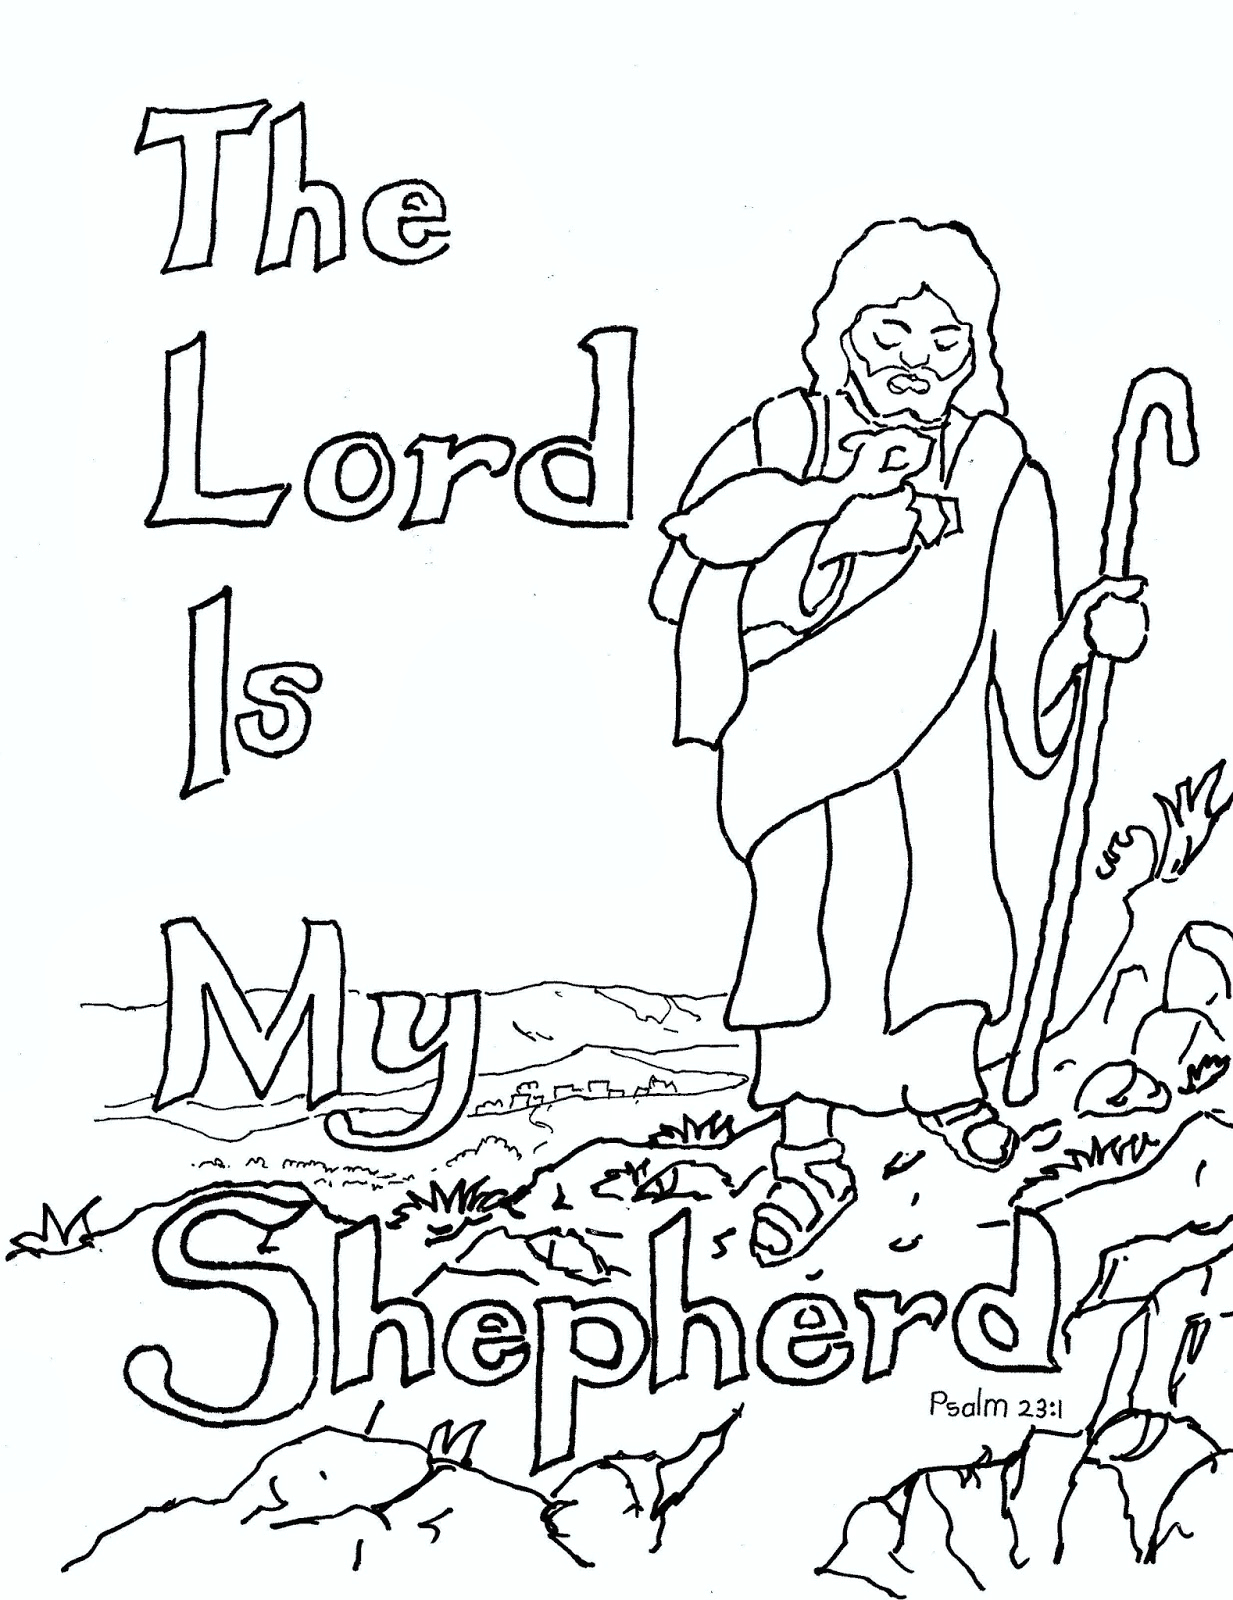 The Lord is My Shepherd Coloring Page Coloring Pages for Kids by Mr Adron the Lord is My